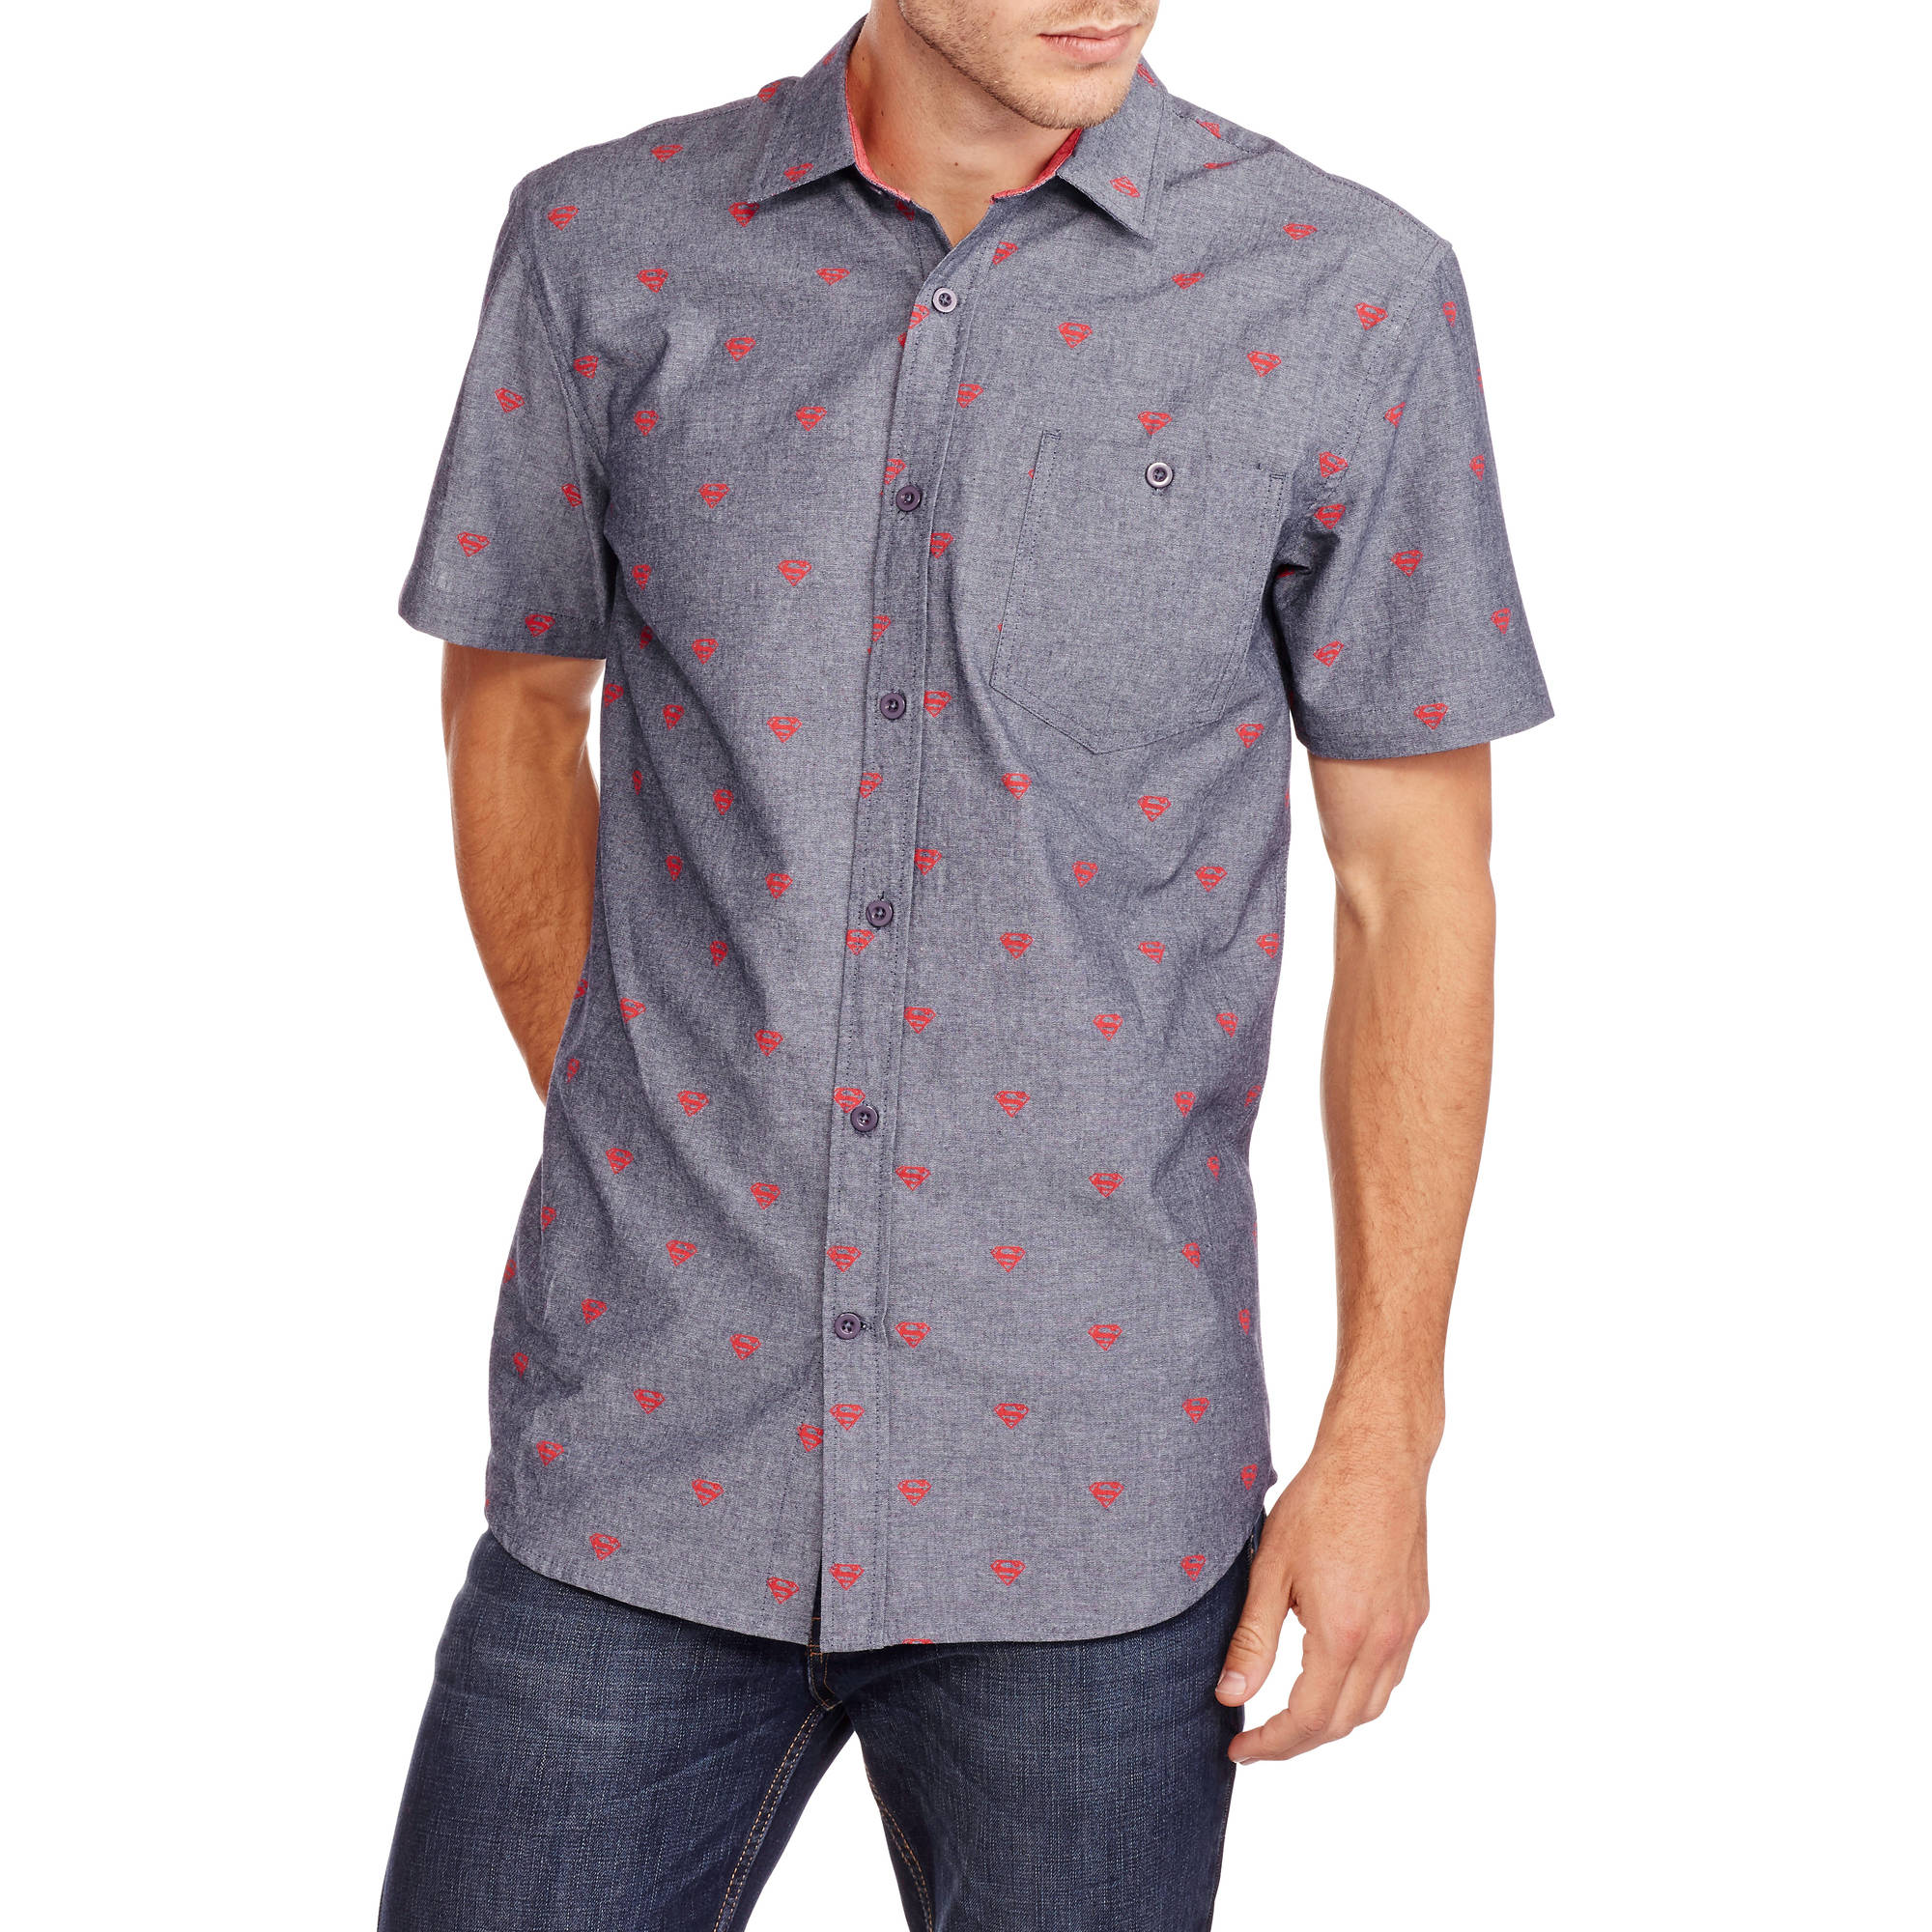 Superman Men's Short Sleeve All Over Printed Woven Shirt